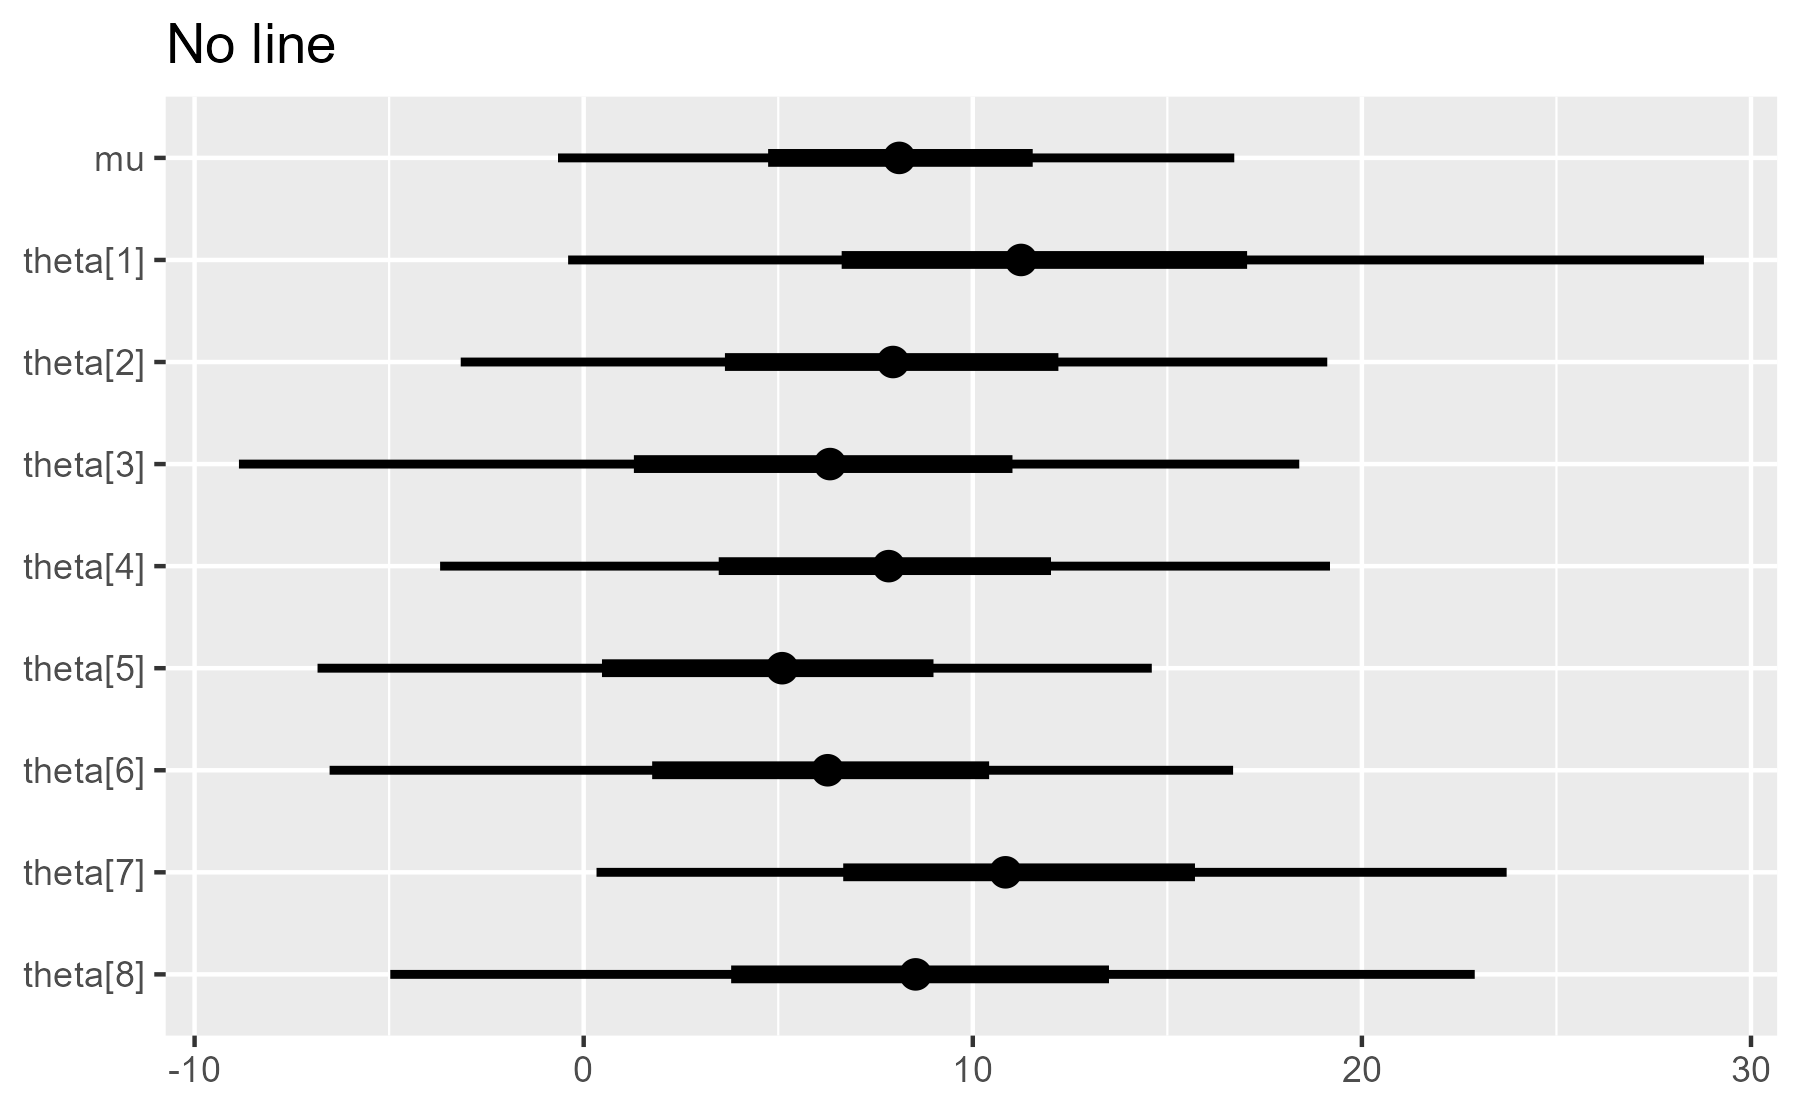 A test of the plot_intervals() function